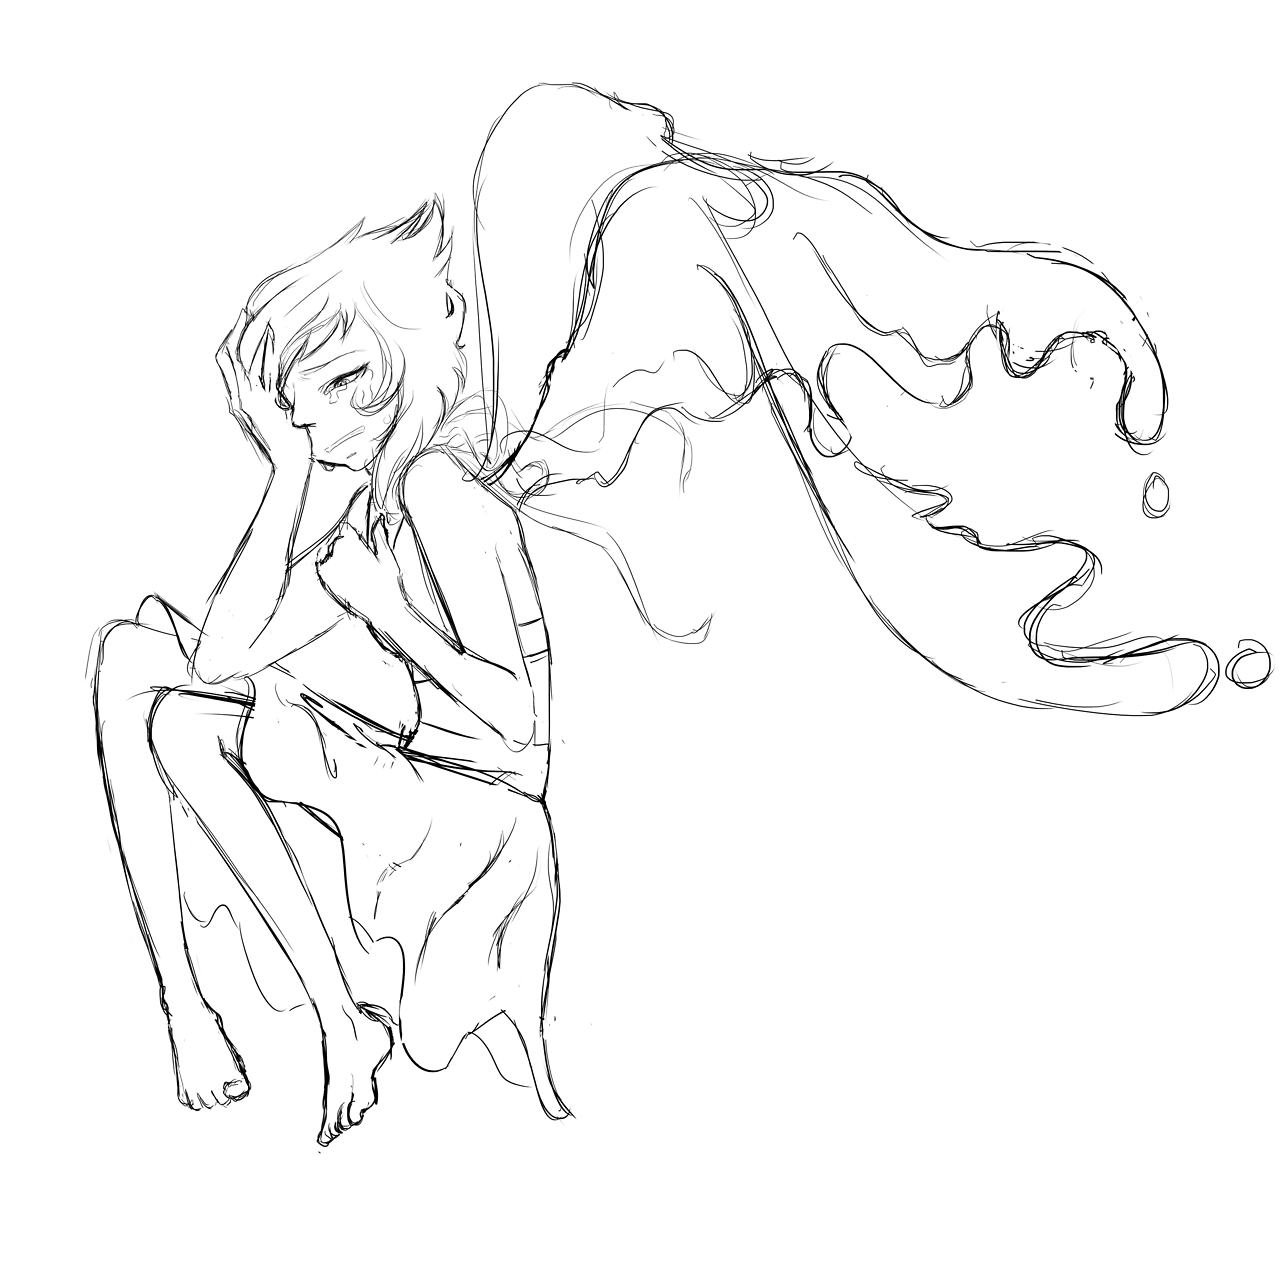 Last night I got drunk and said and did some shit that hurt myself and others so here's a Lapis. I'll probably legit finish and color this one day when I'm more sober. Please do not repost or remove...